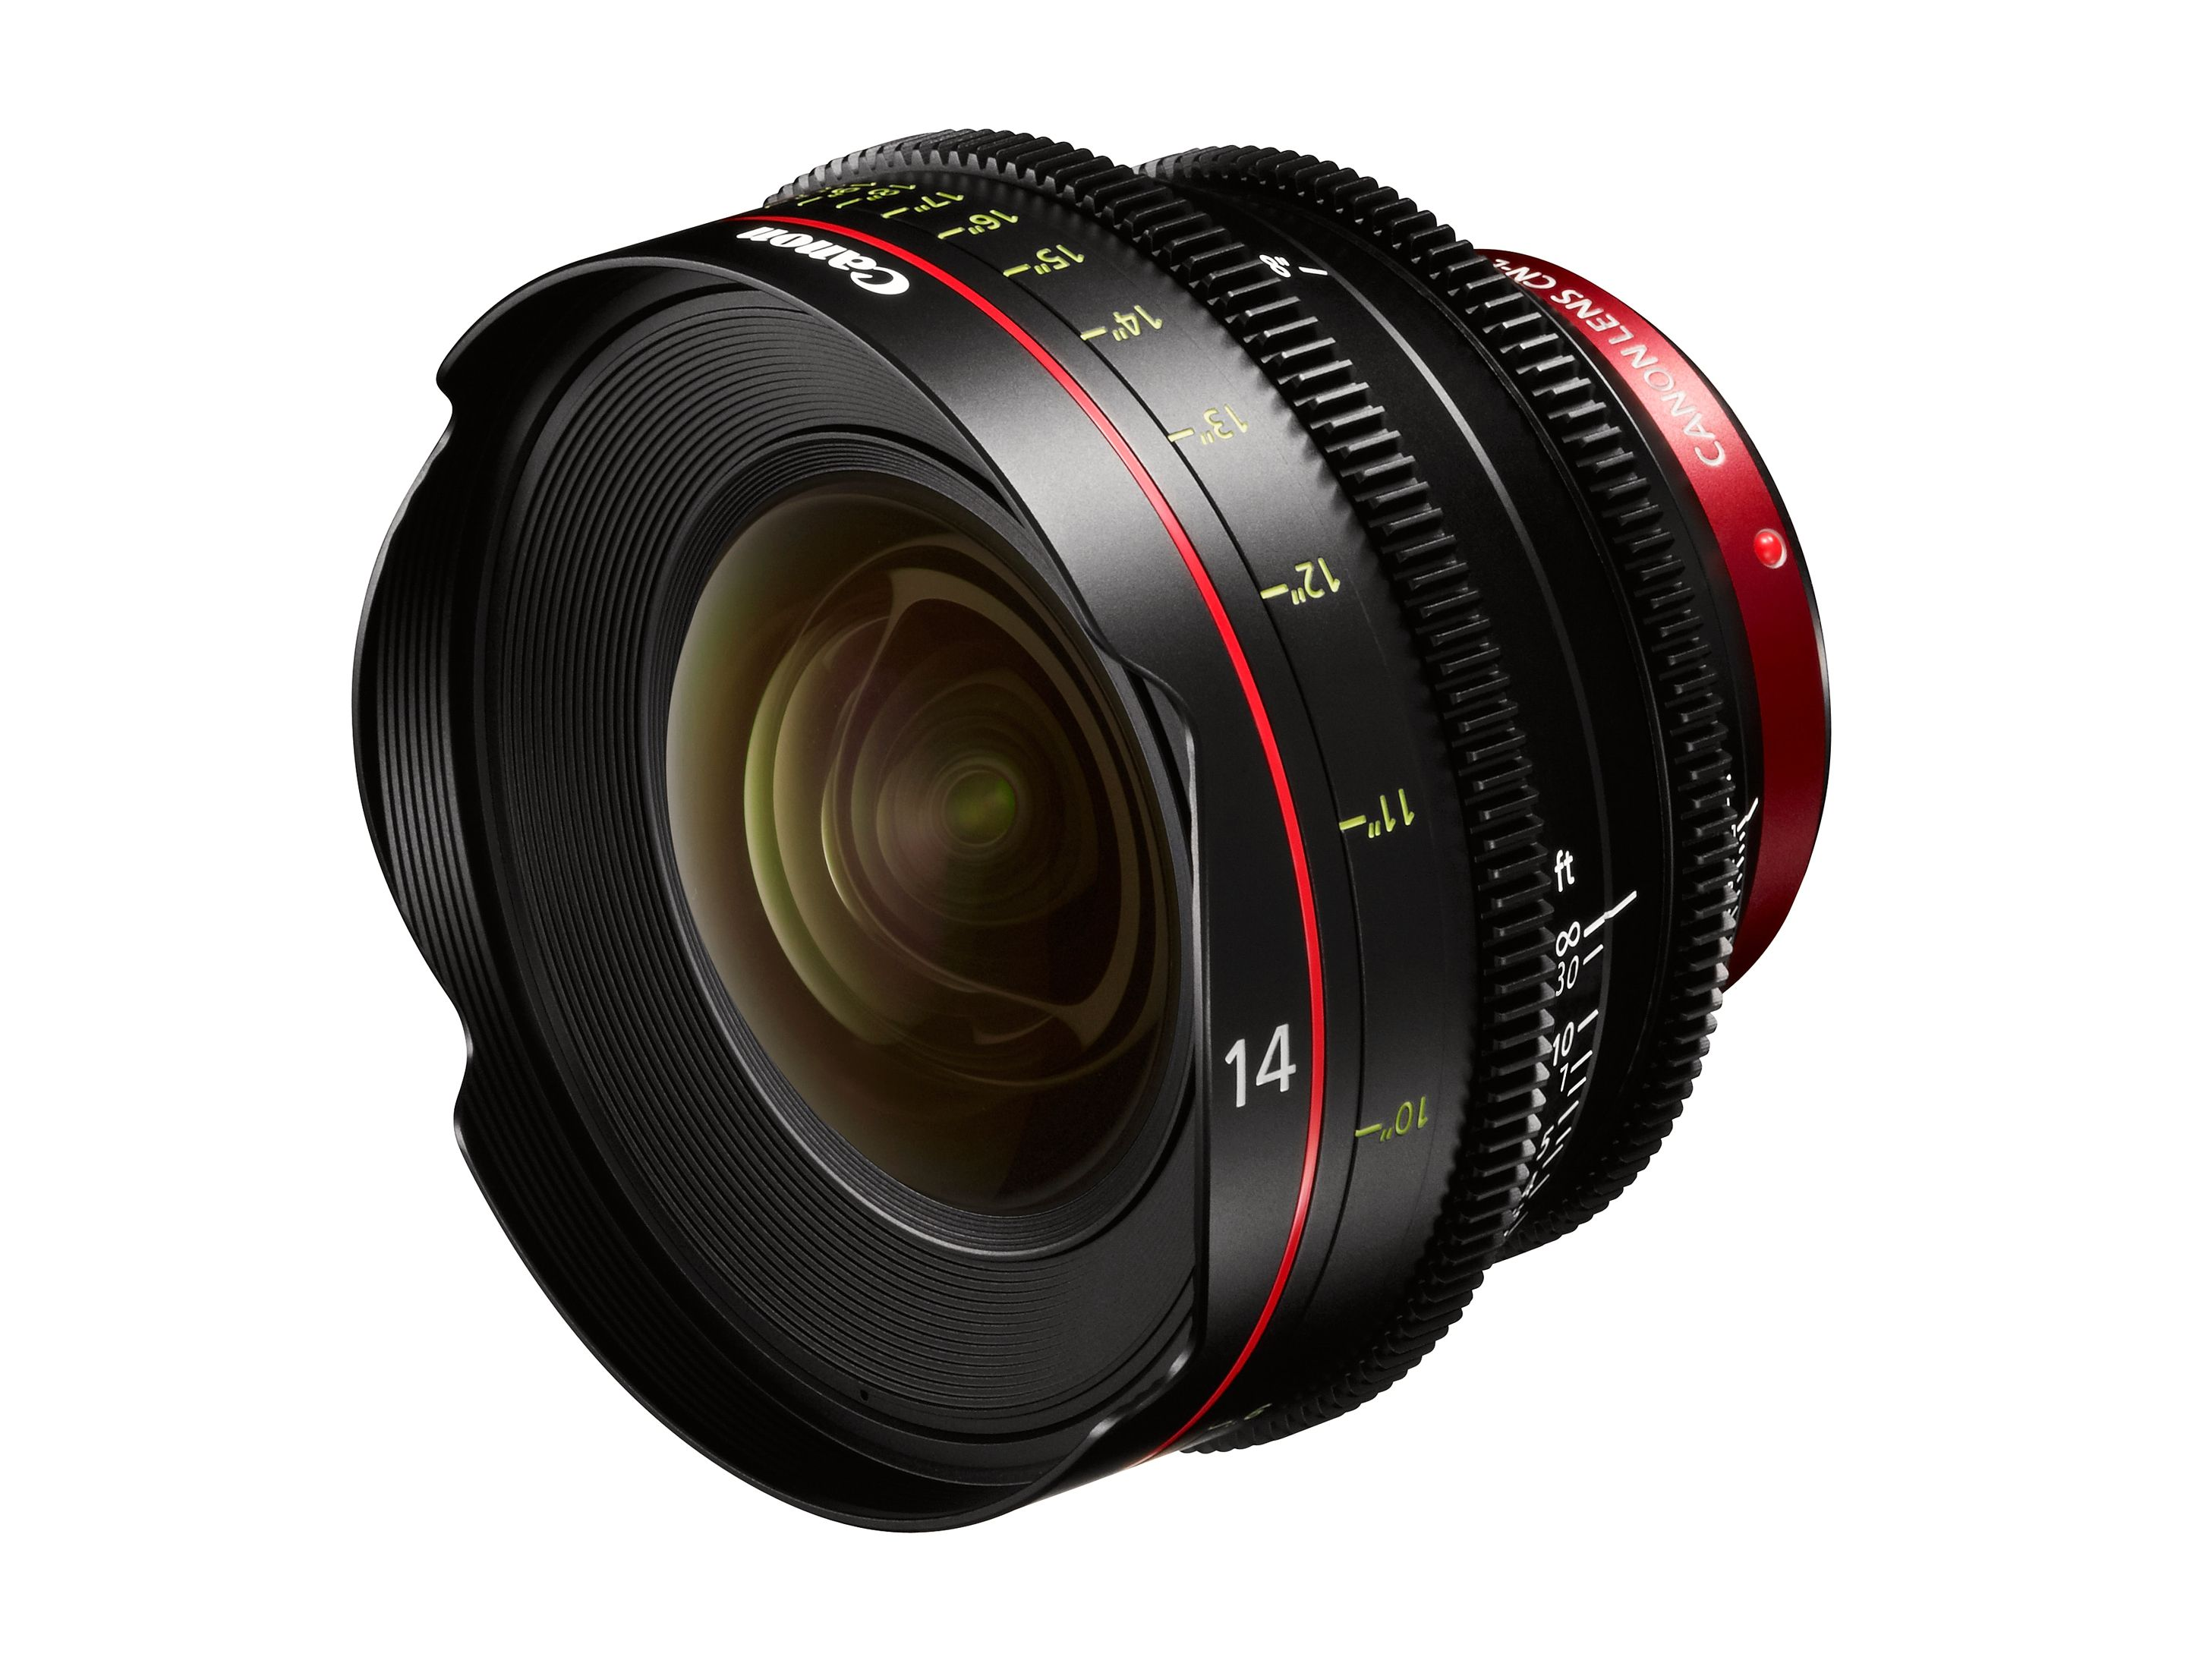 Canon EF 14mm T3.1.